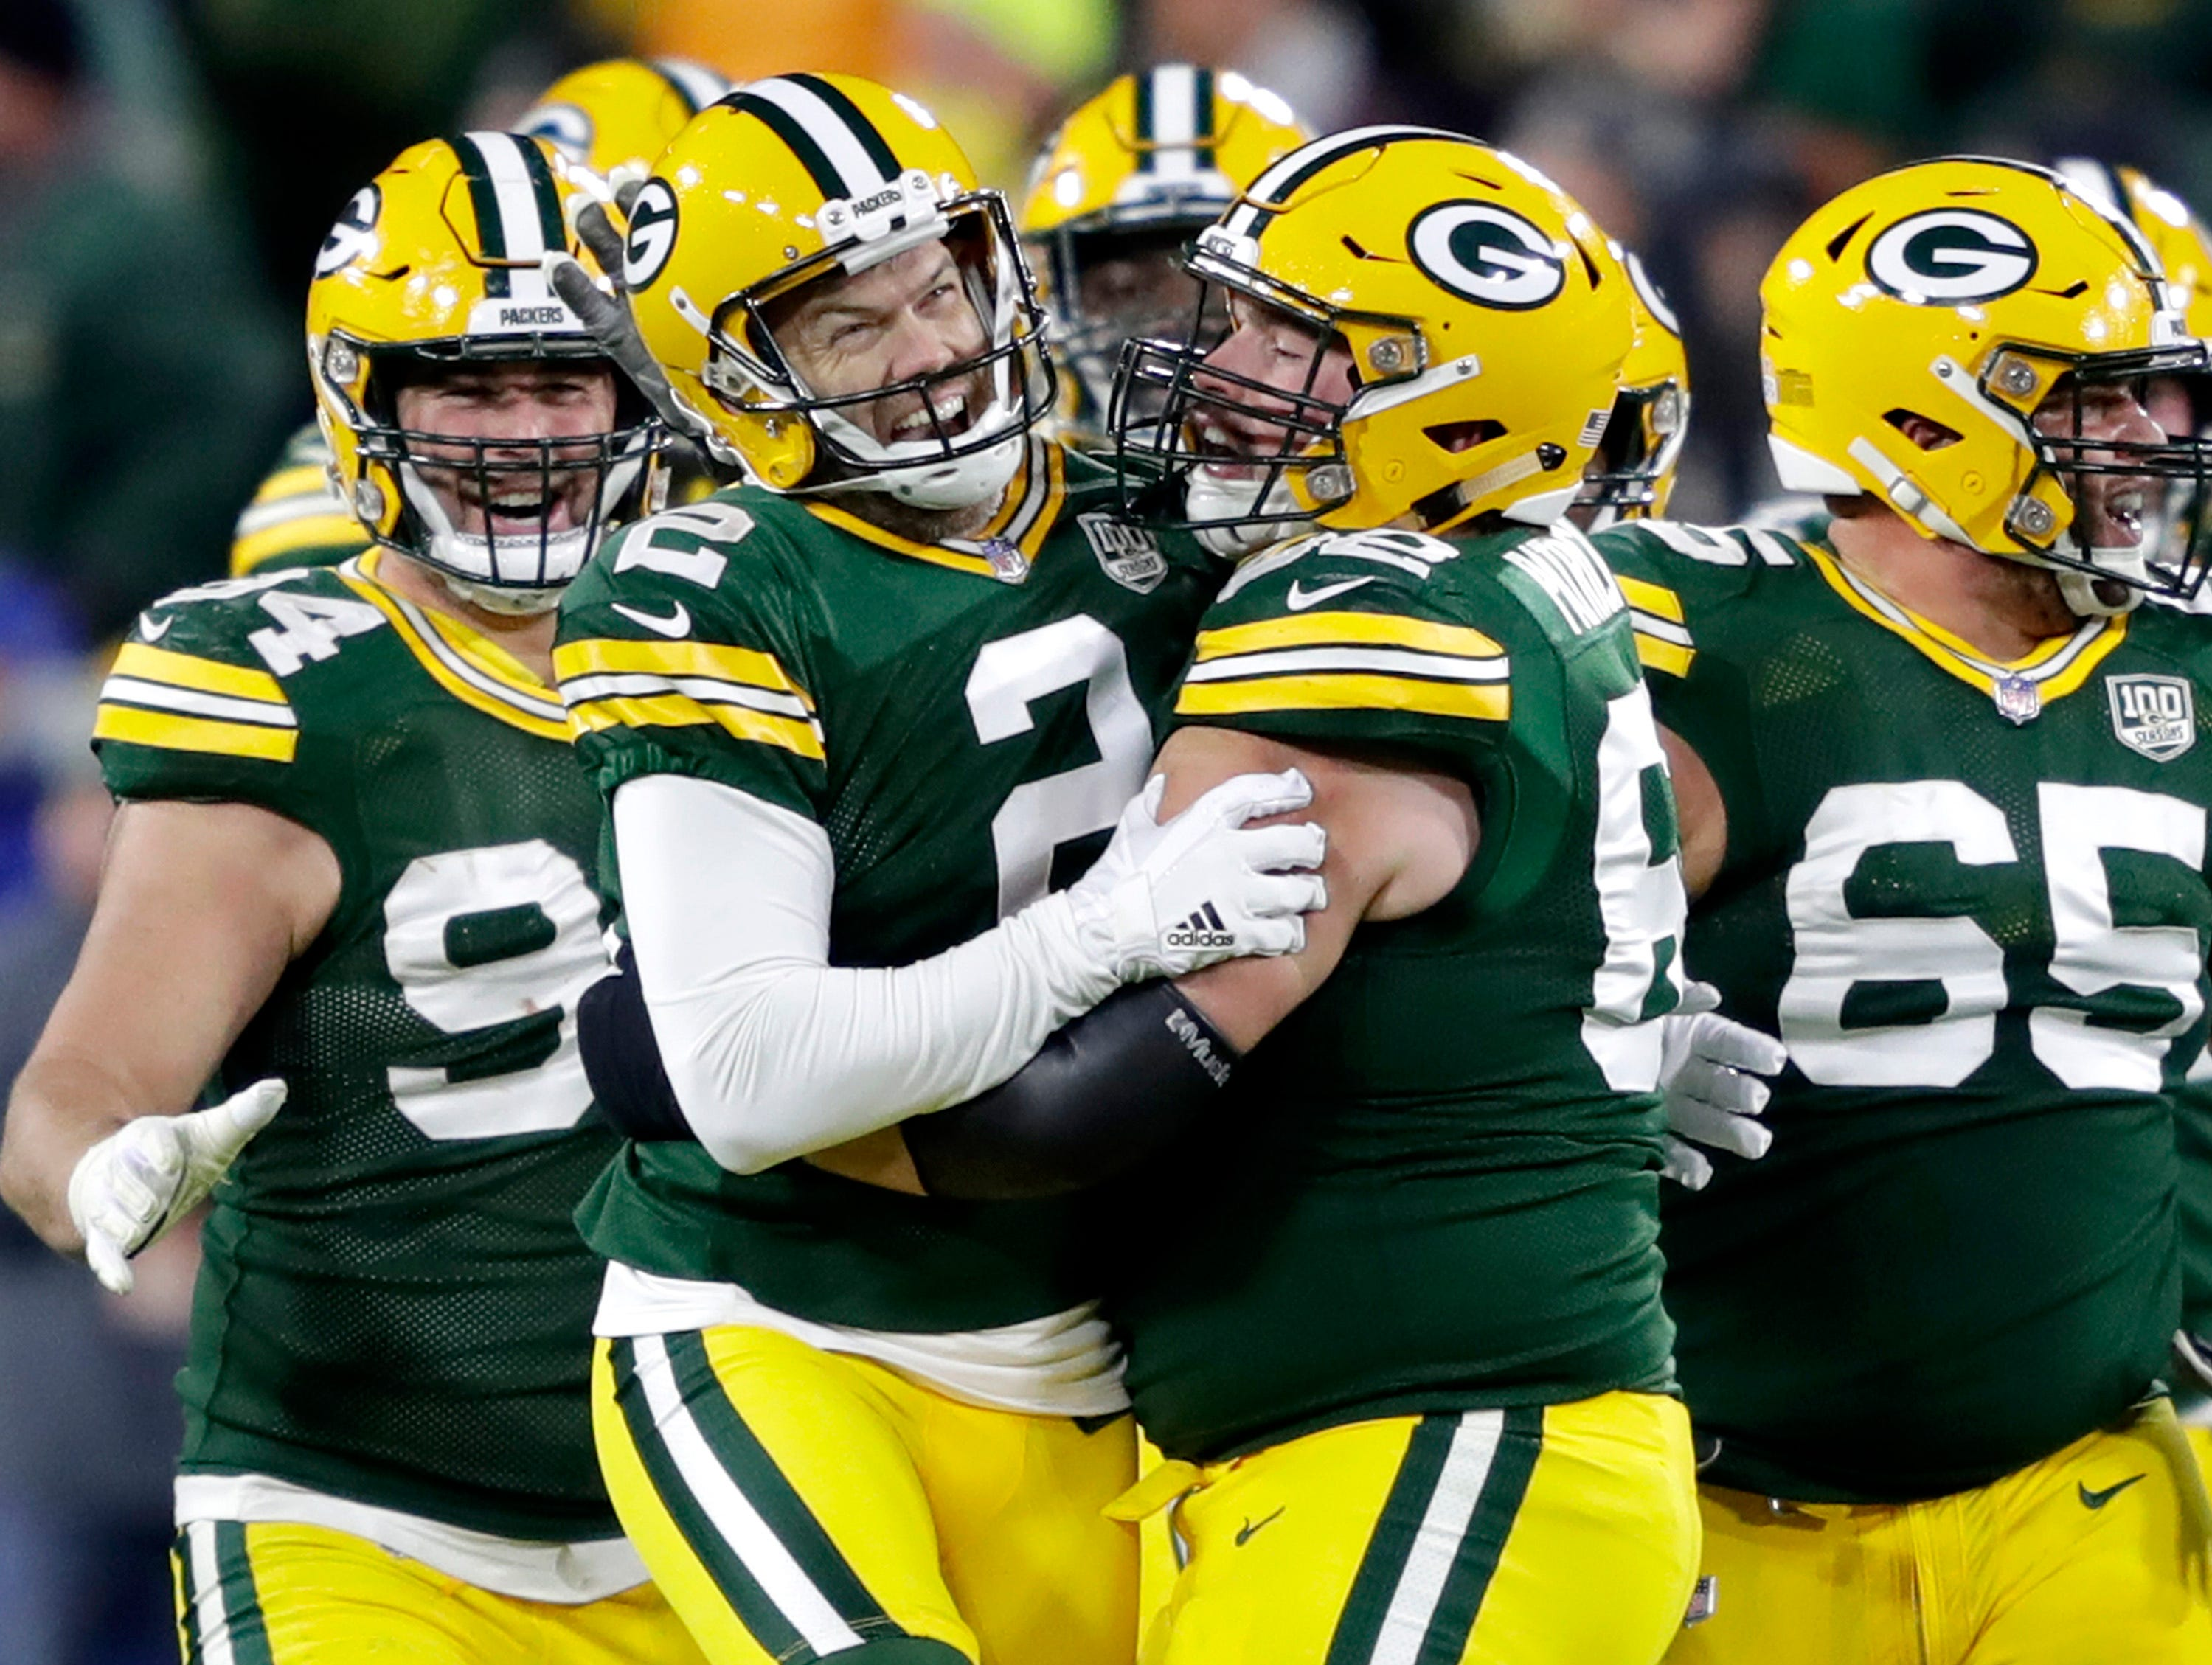 Green Bay Packers kicker Mason Crosby celebrates a game winning 27 yard field goal against the San Francisco 49ers on Monday, October 15, 2018, at Lambeau Field in Green Bay, Wis. The Packers won 33 to 30.